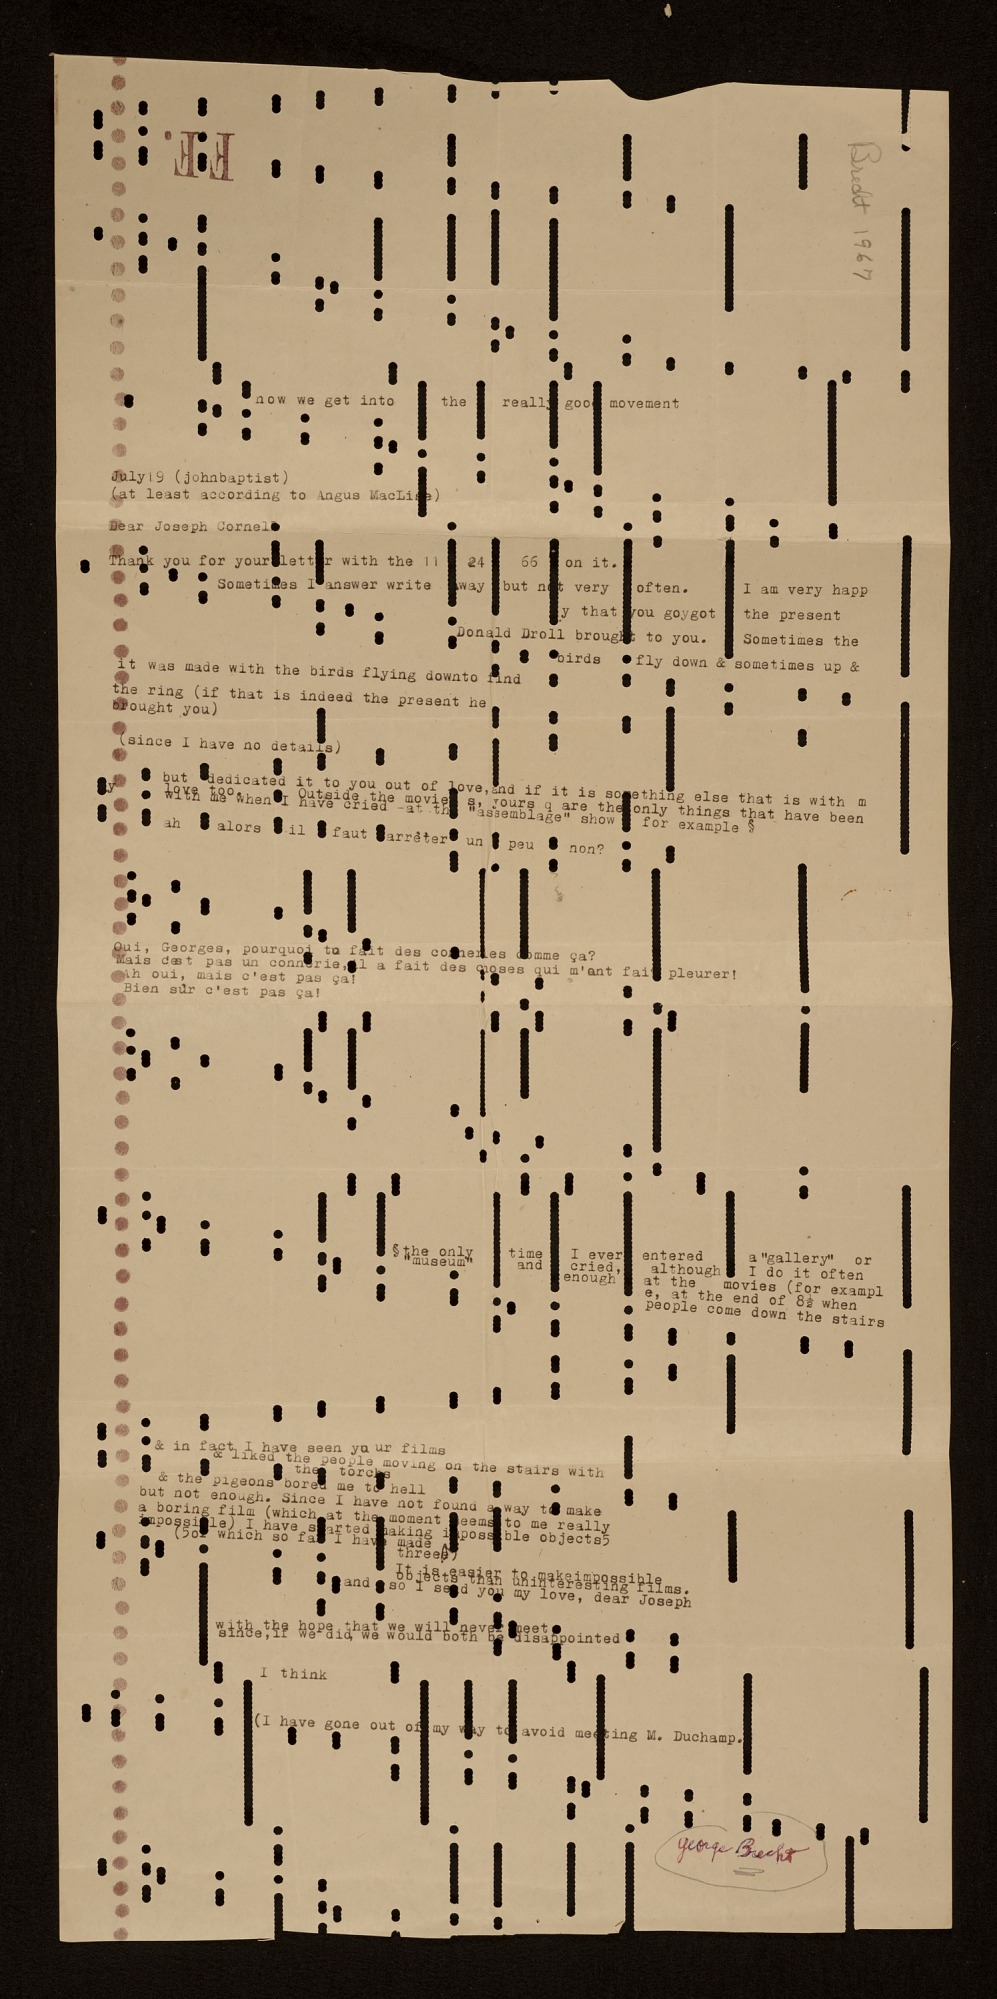 Image for George Brecht letter to Joseph Cornell